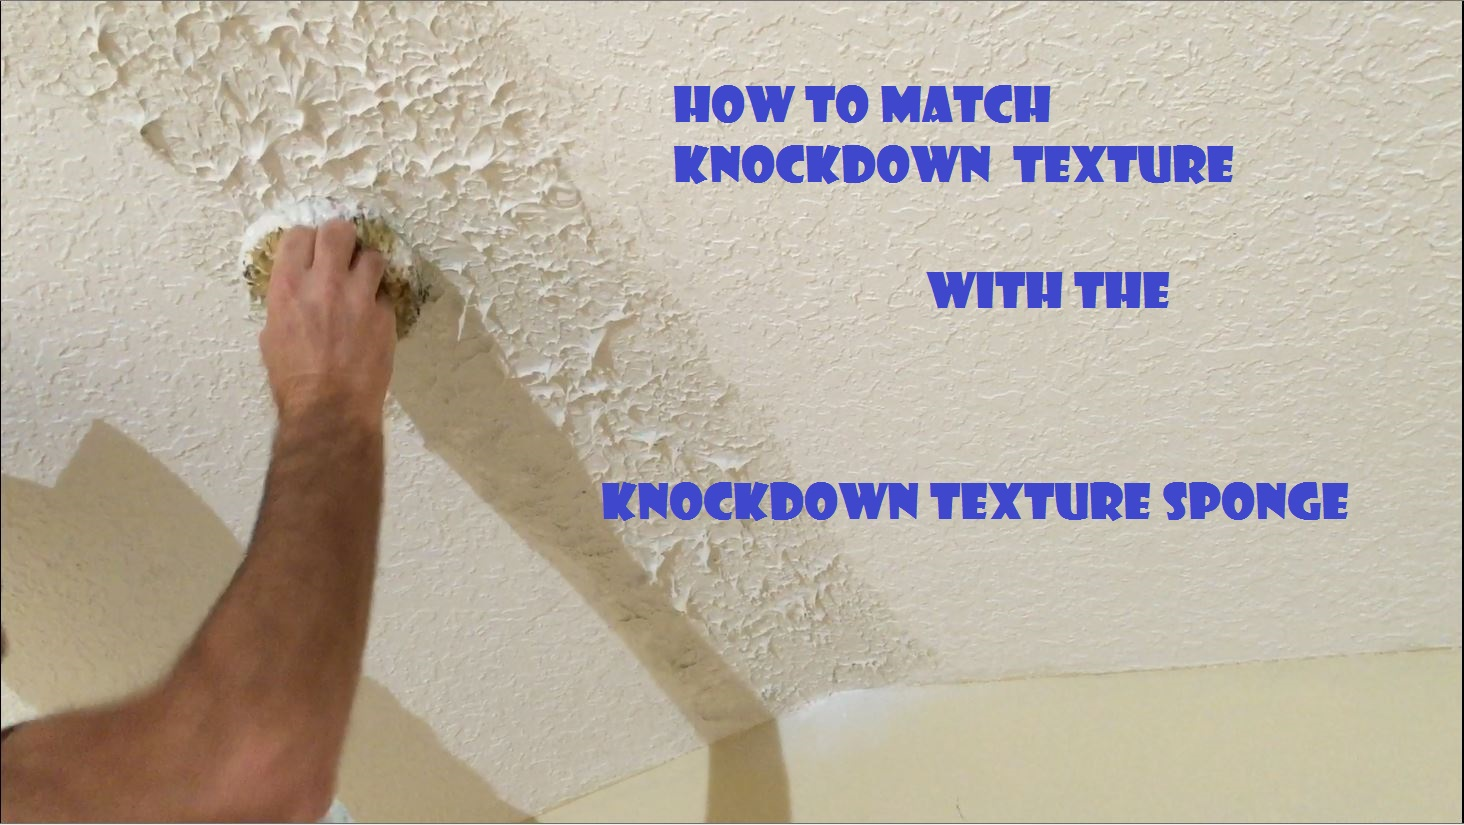 Knockdown Texture Sponge Drywall Repair Tool